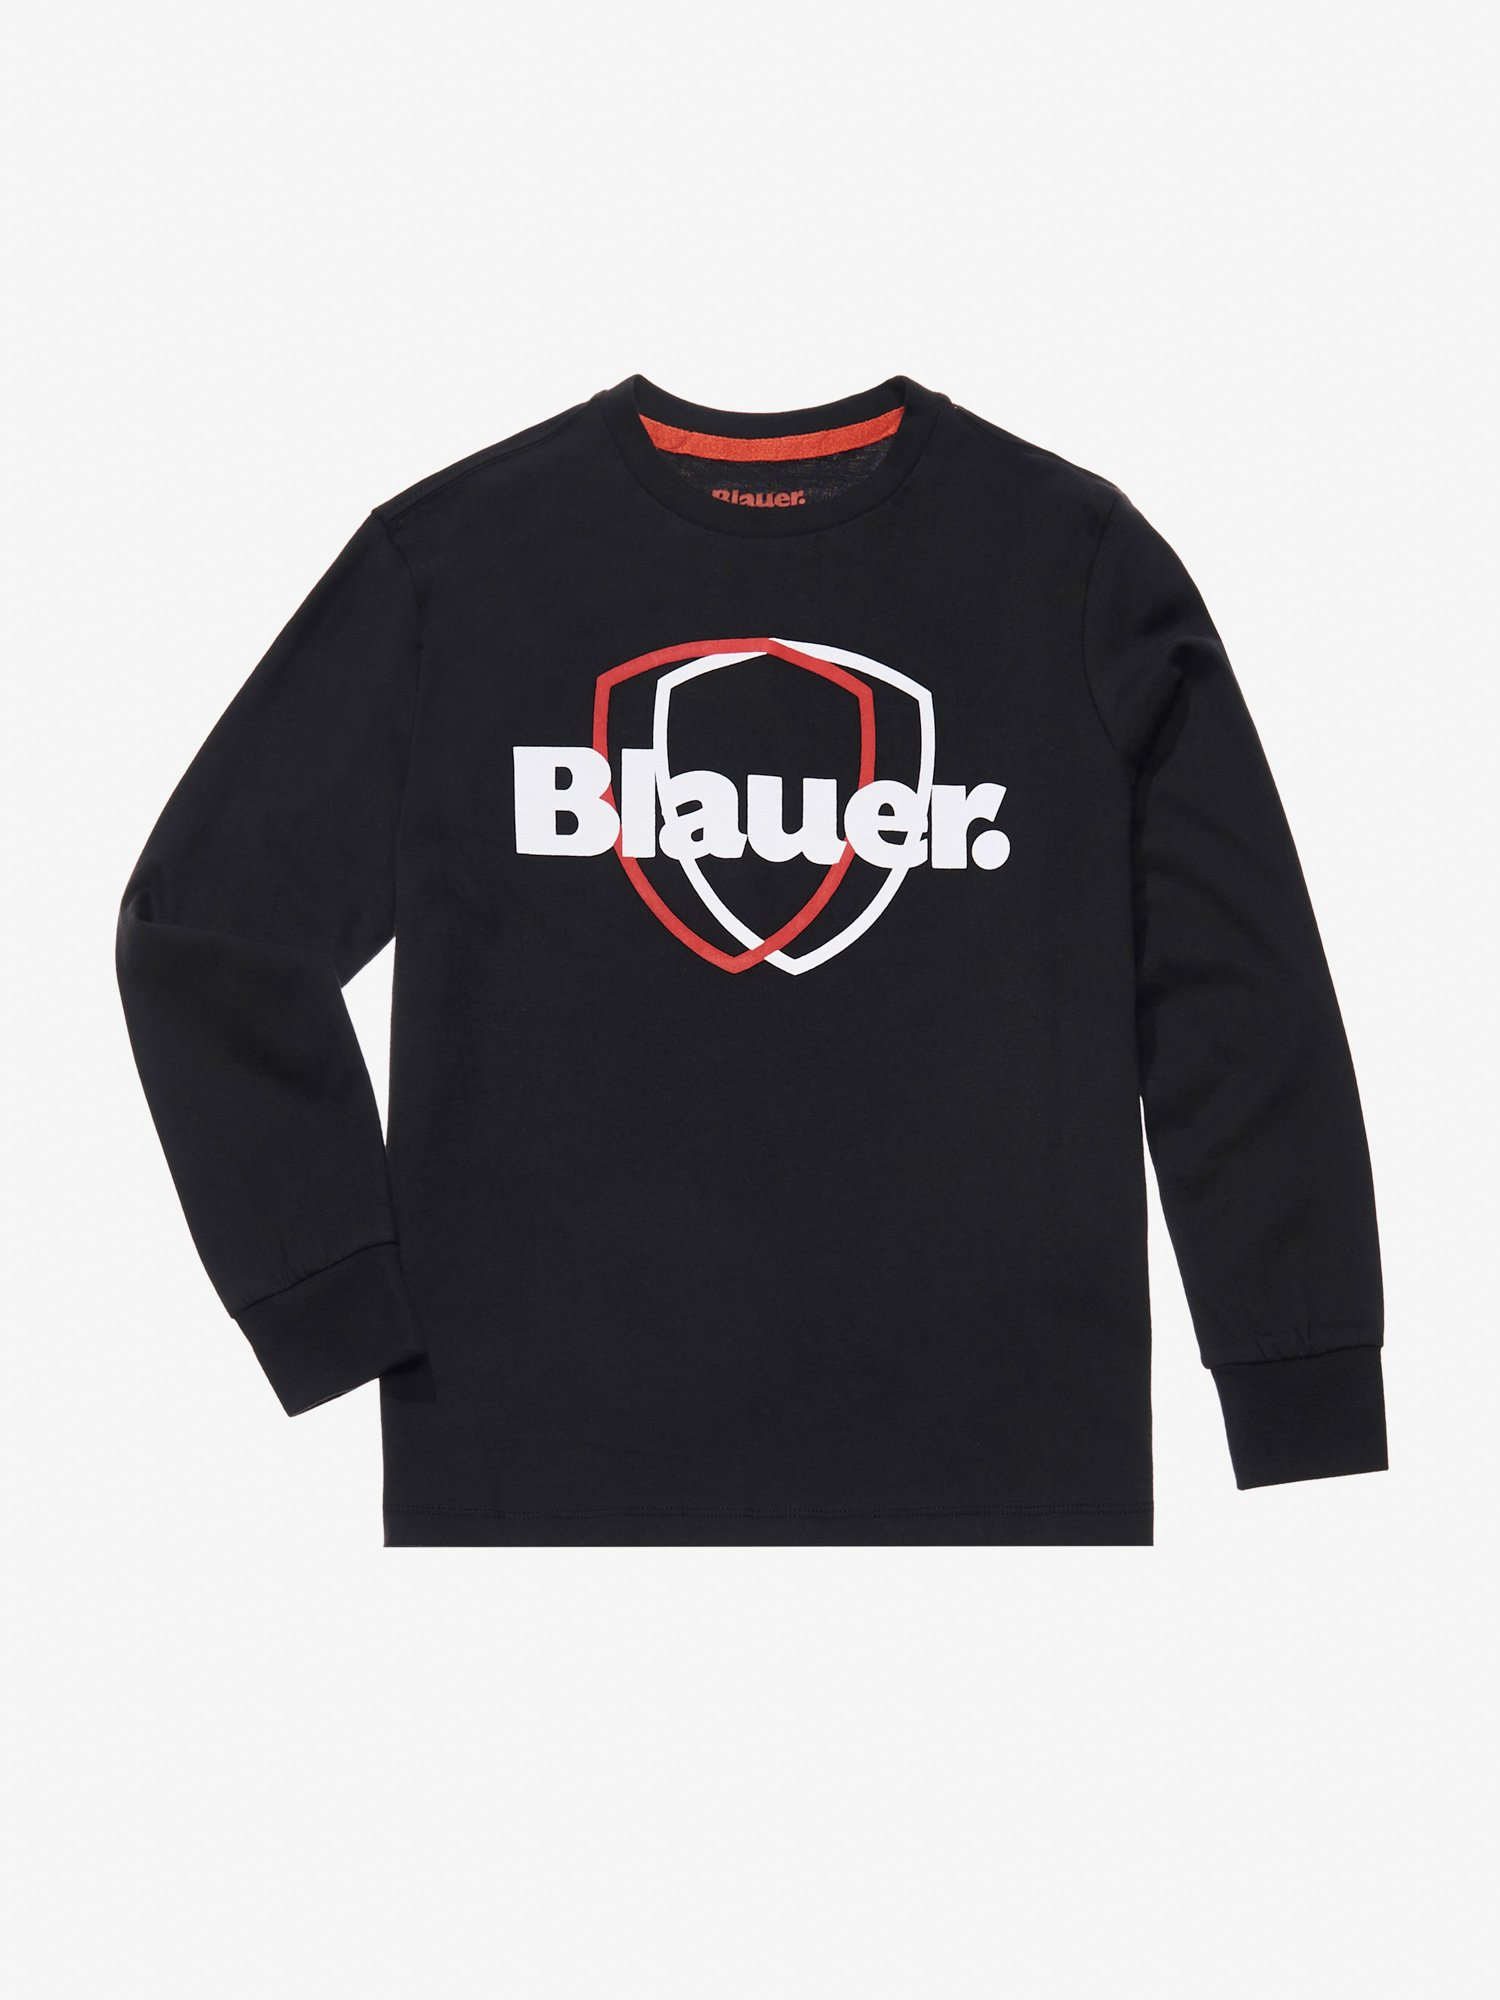 Blauer - DOUBLE SHIELD COTTON JERSEY SWEATER - Black - Blauer